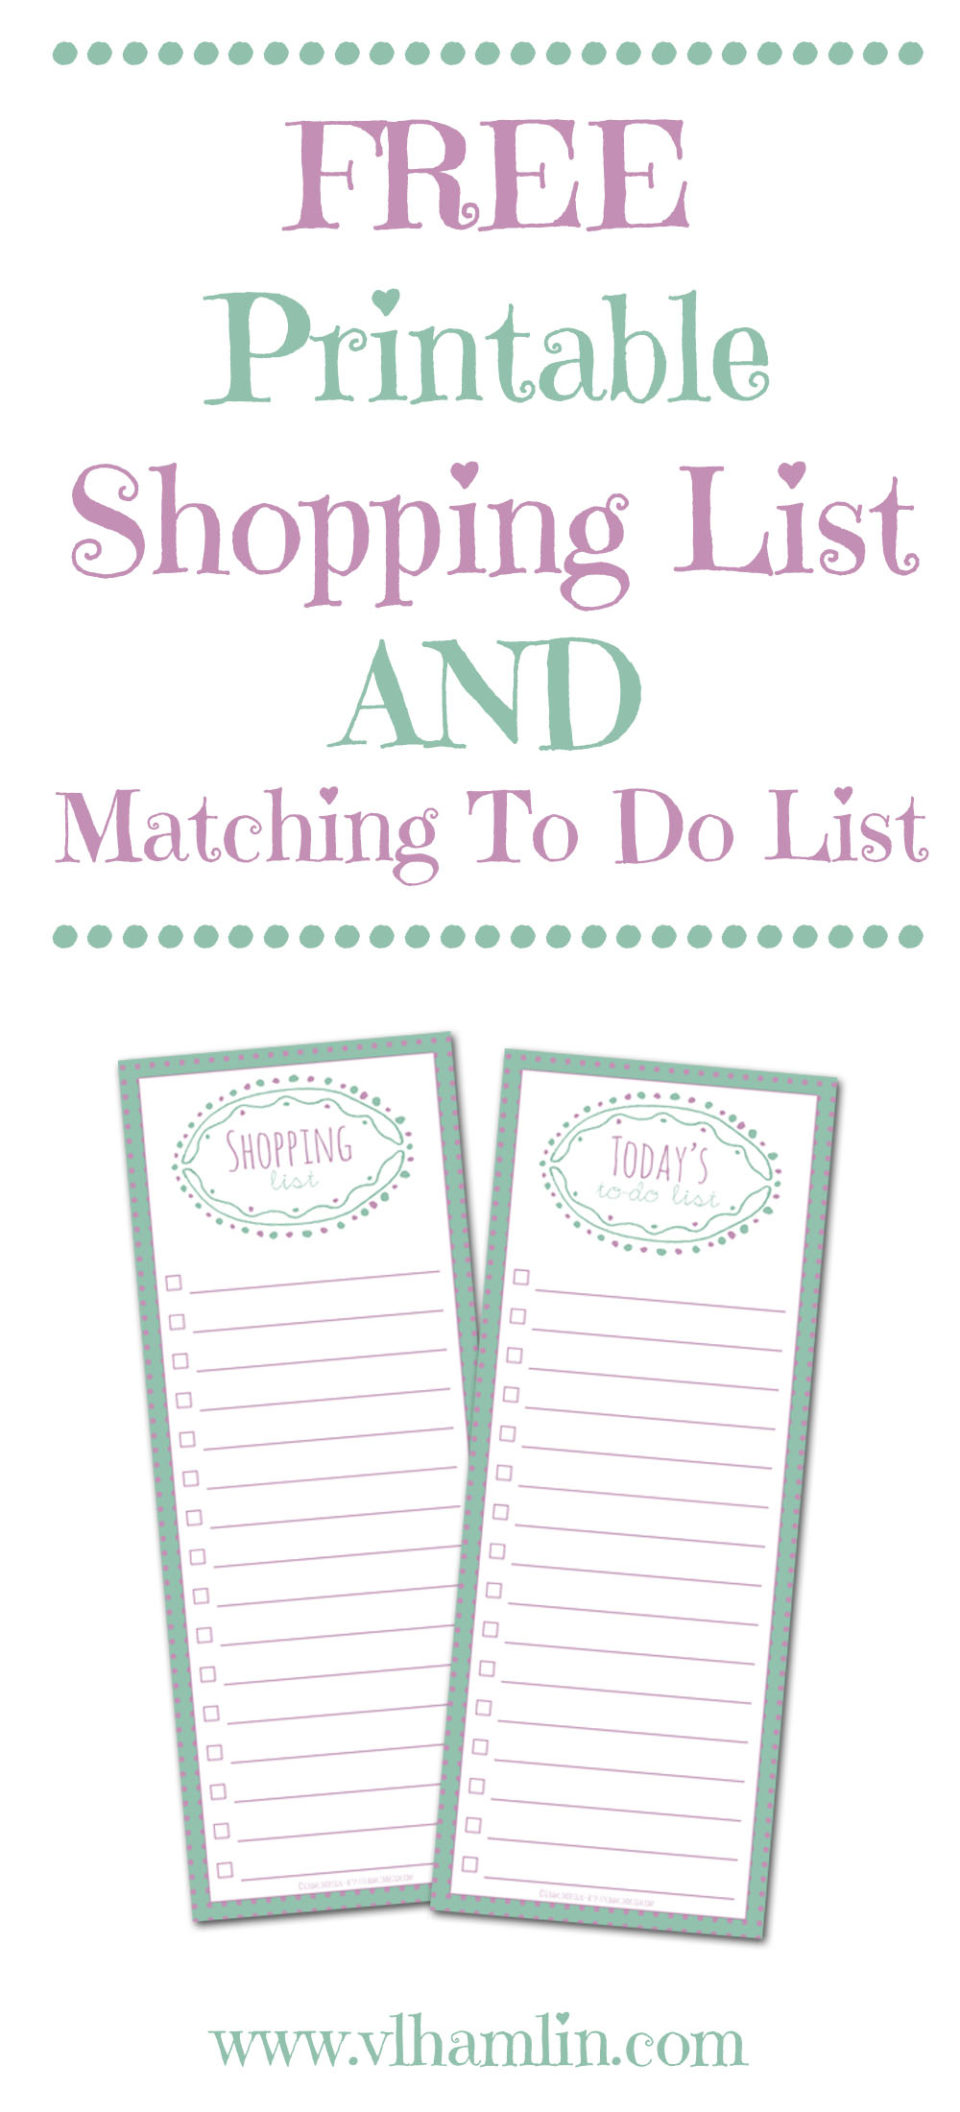 Free Printable Shopping List and Matching To Do List